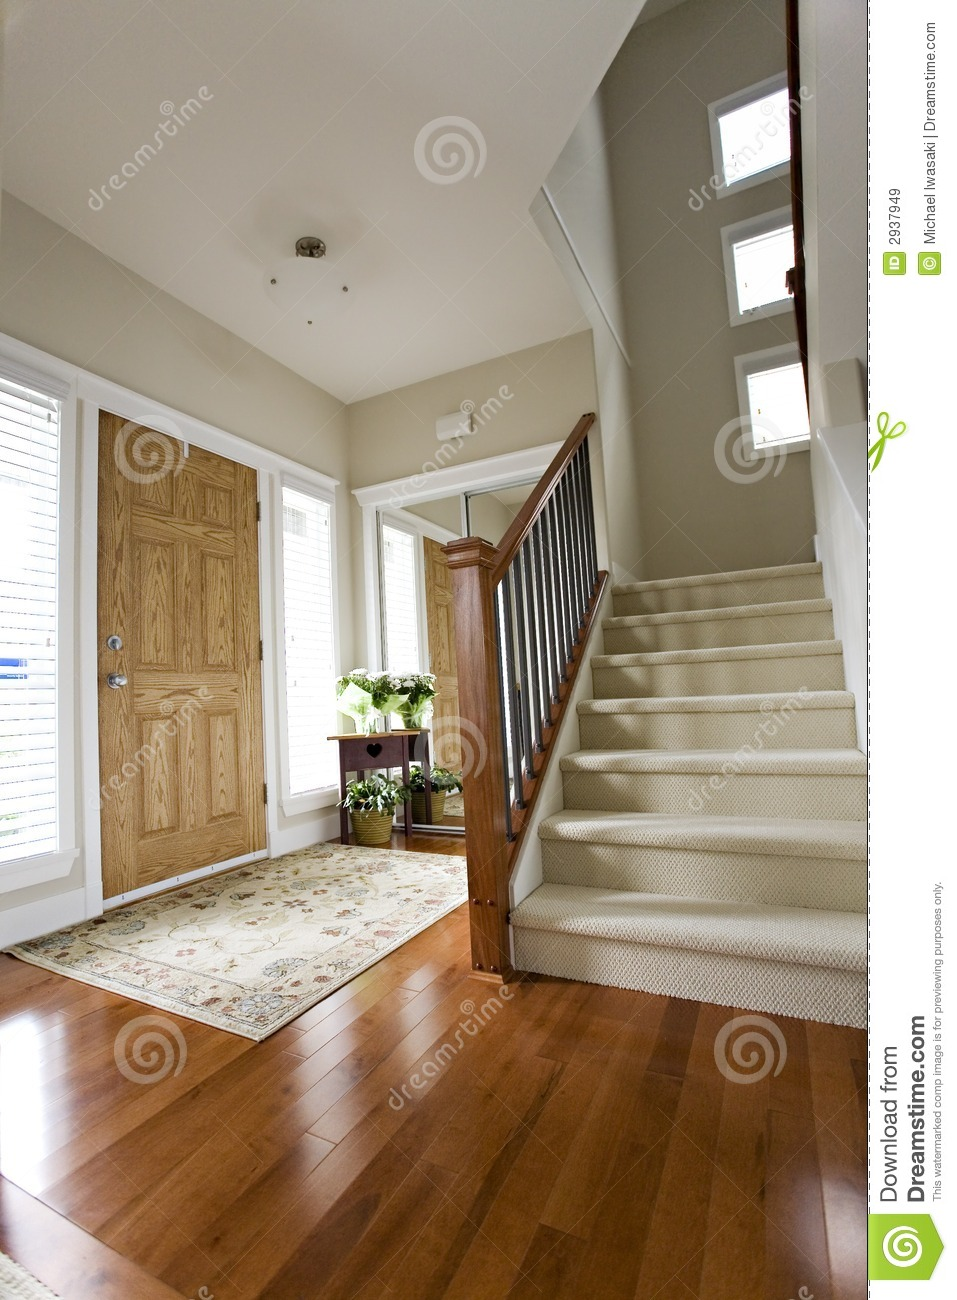 House Front Hall Entrance Royalty Free Stock Images